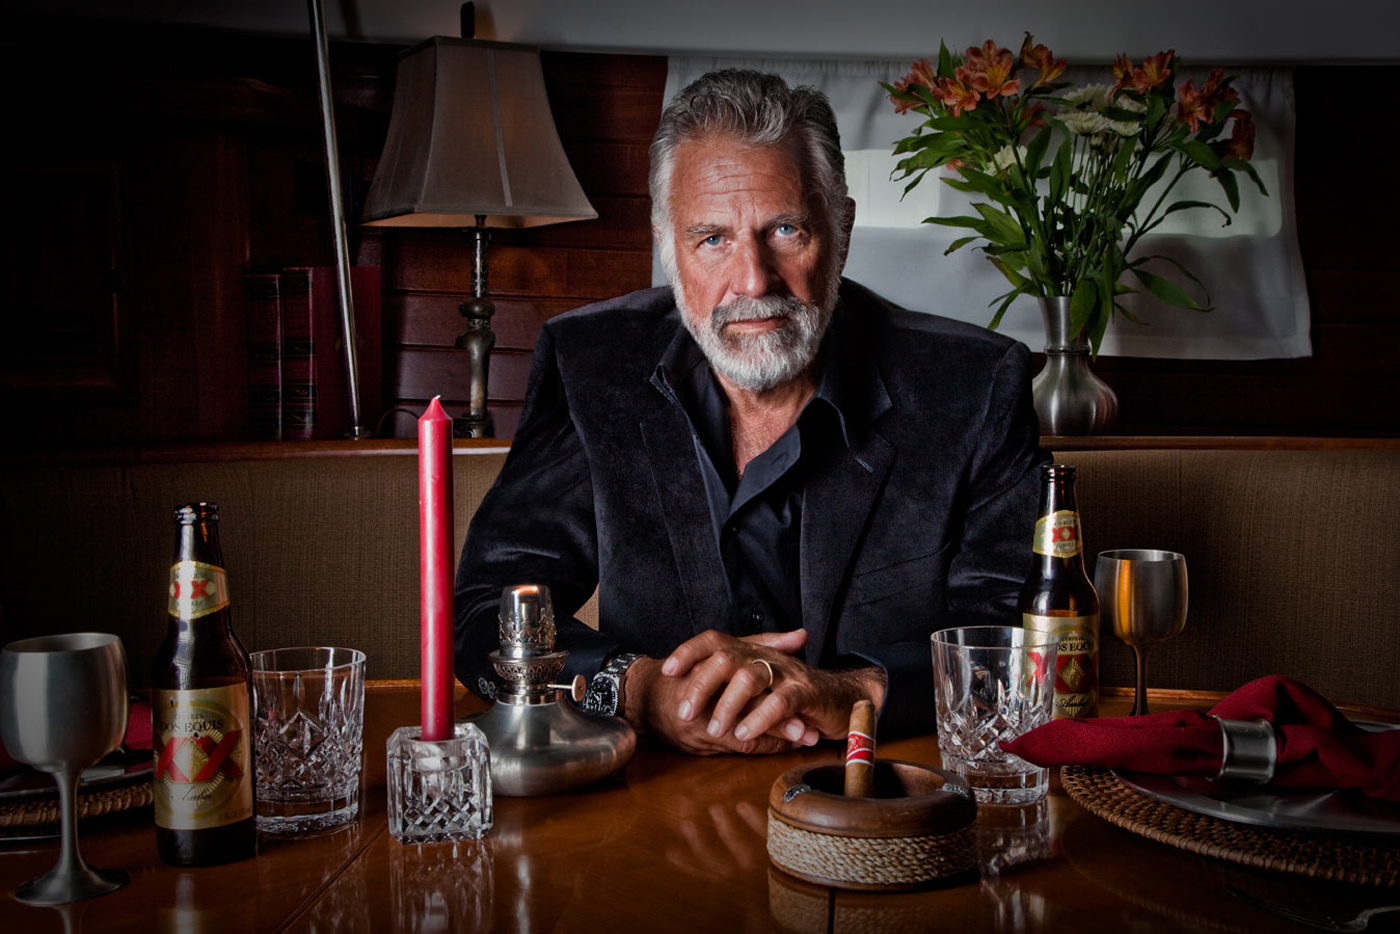 dos_equis_most_interesting_man dos equis the most interesting man in the world the inspiration room,Doseki Beer Meme